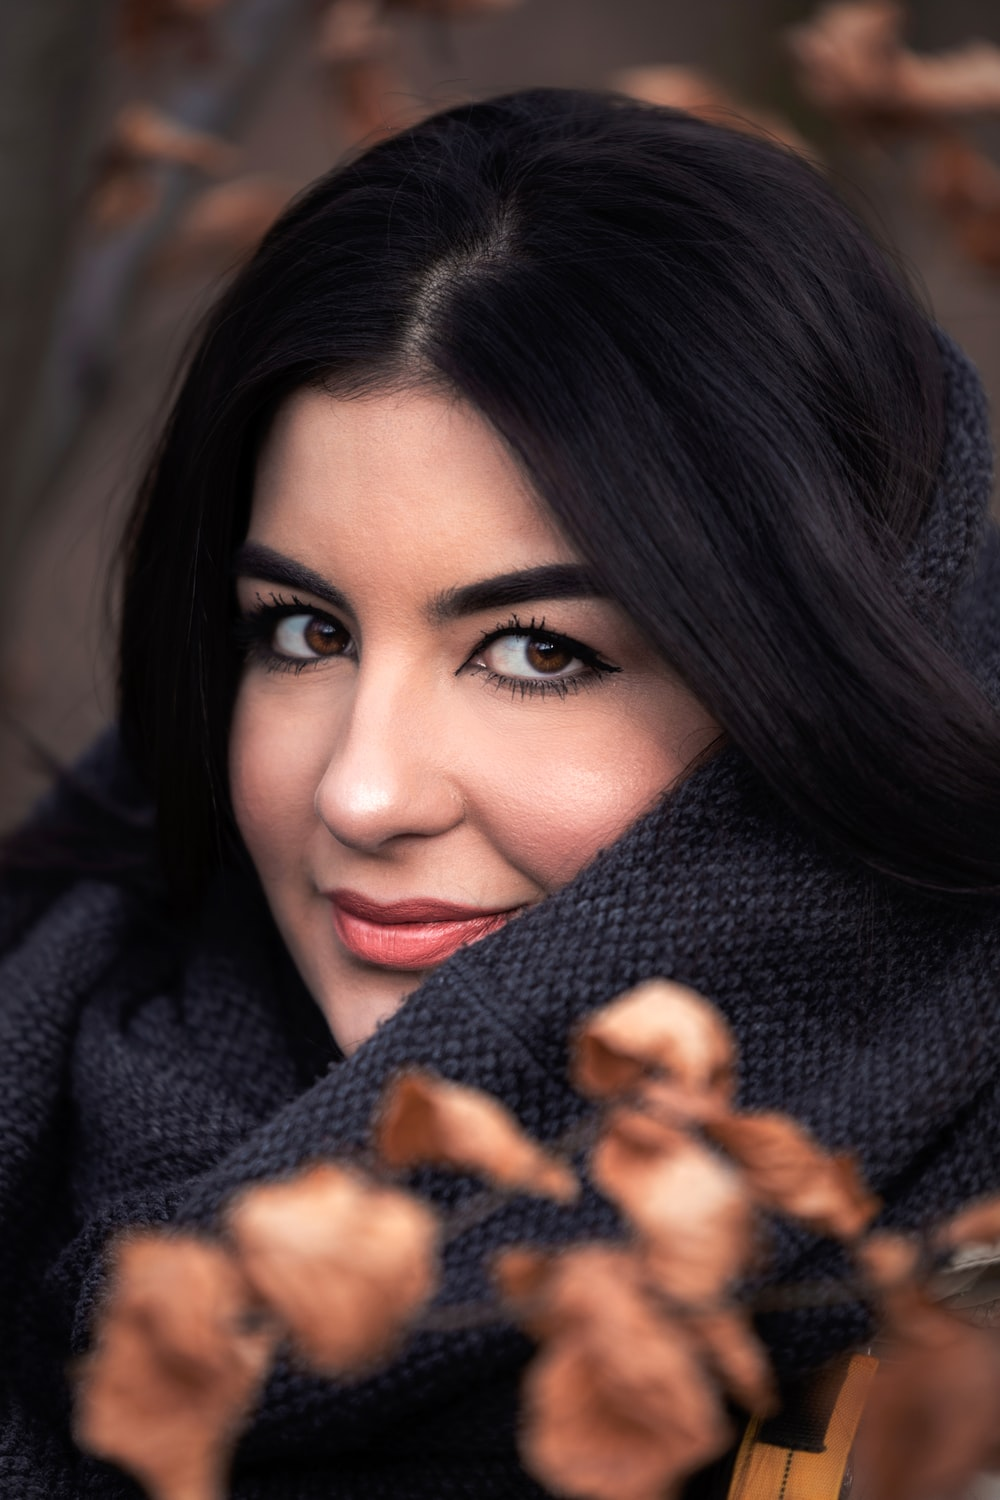 smiling woman wearing scarf close-up photography